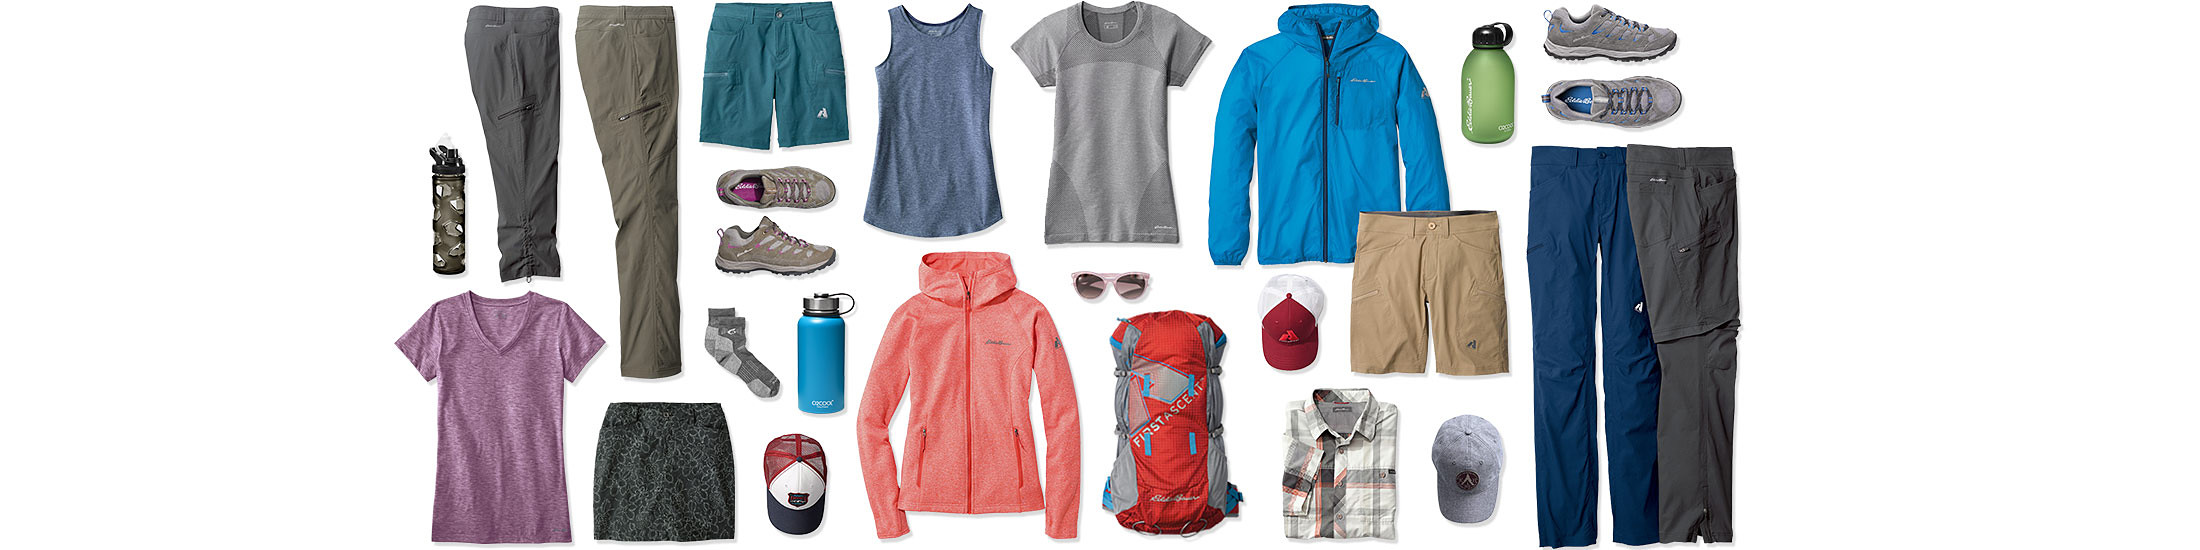 Different hiking pants, shorts, shirts, jackets, shoes, packs, and assorted gear